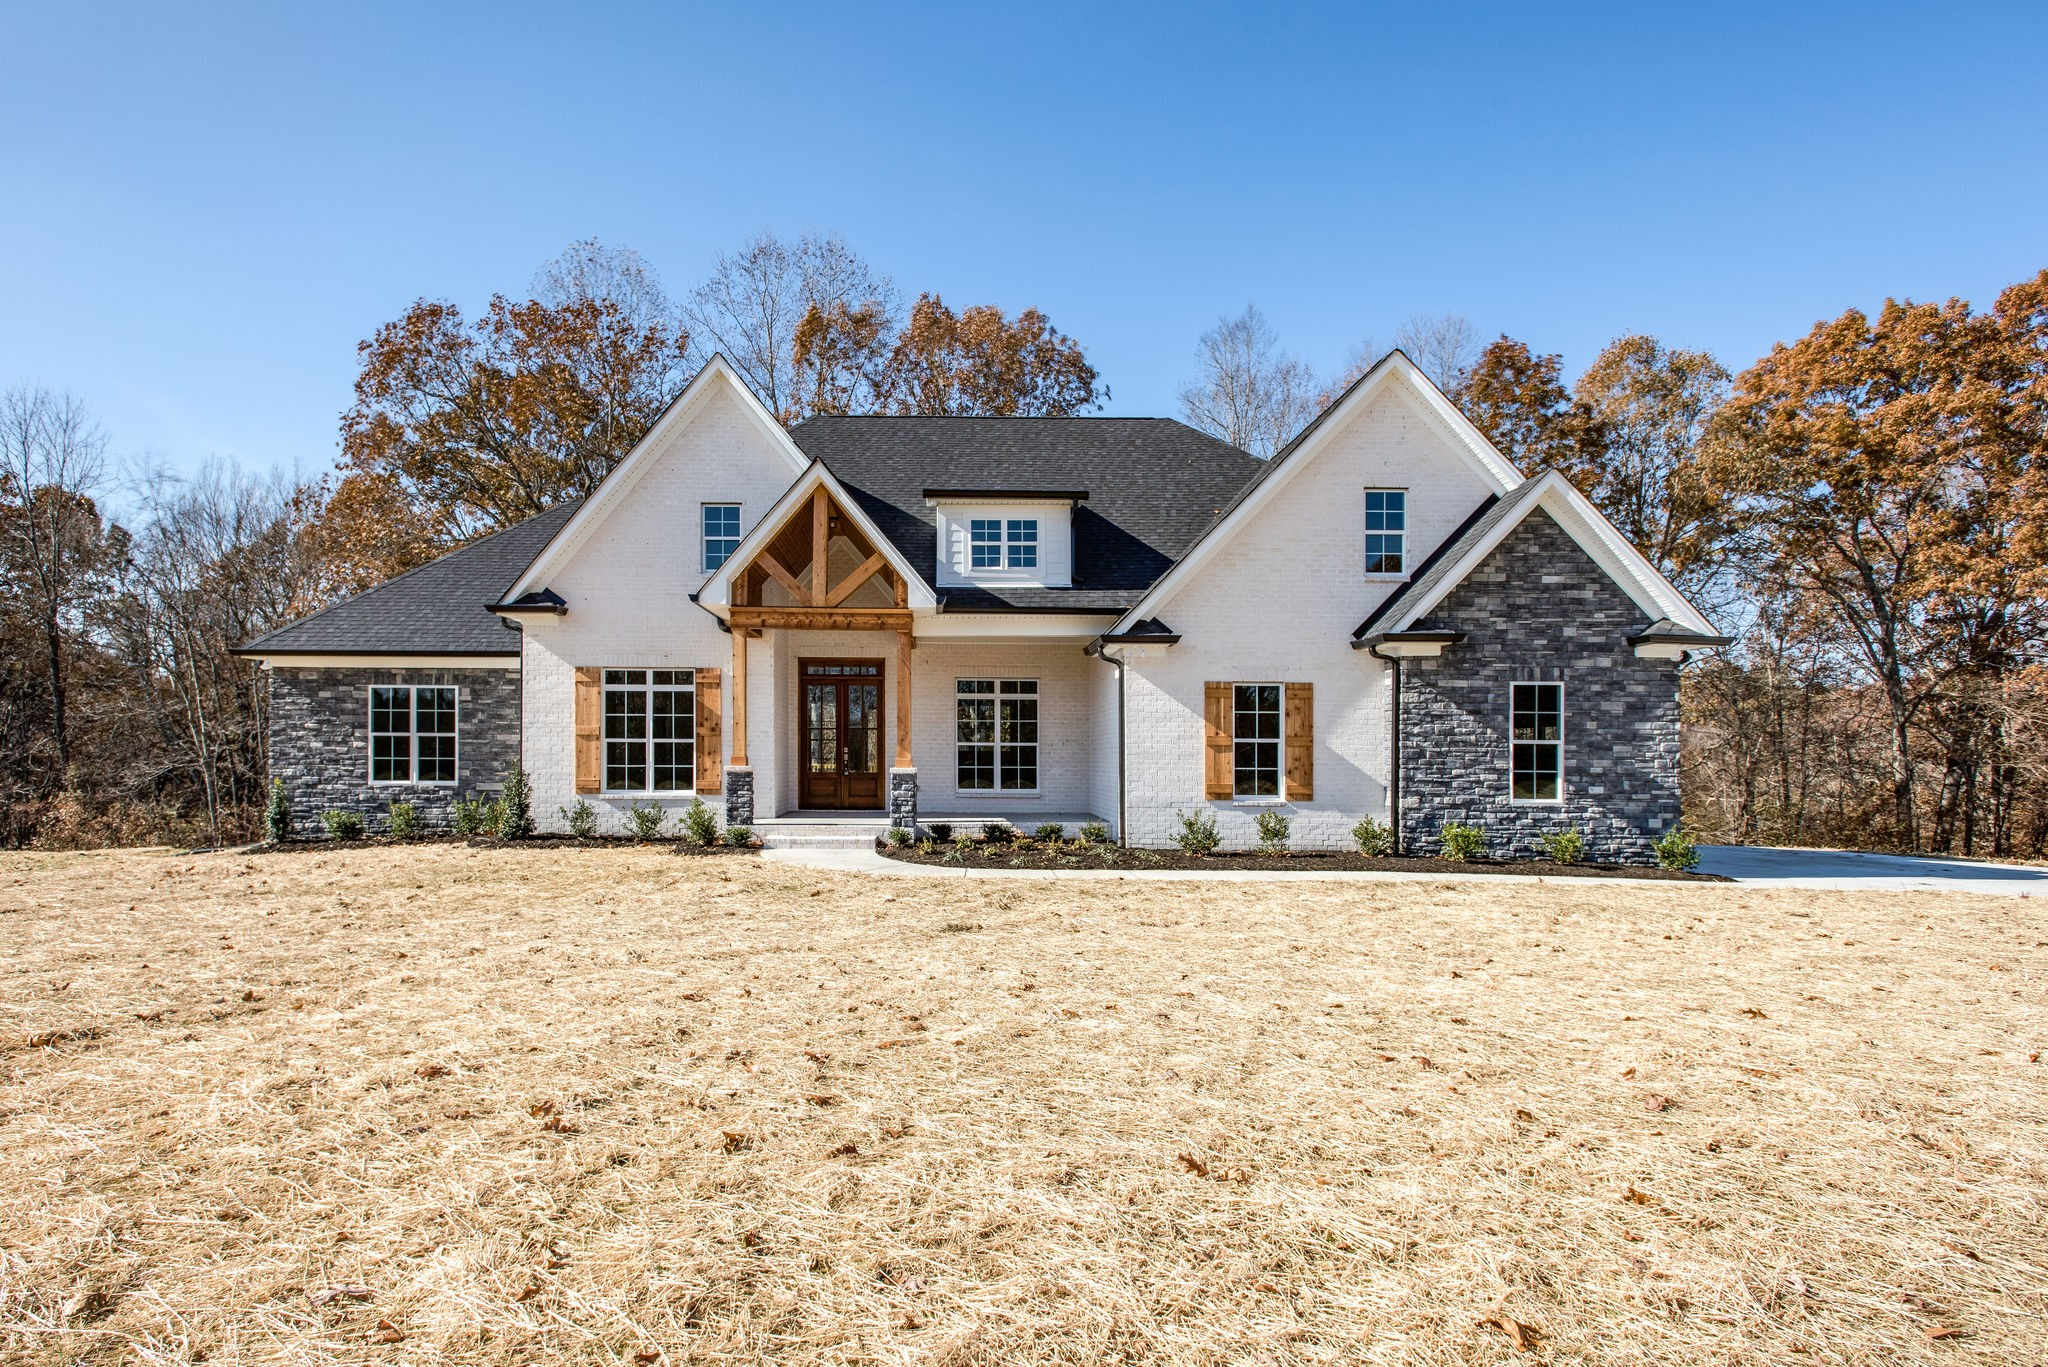 4122 Ironwood Dr, Greenbrier, TN 37073 - Greenbrier, TN real estate listing